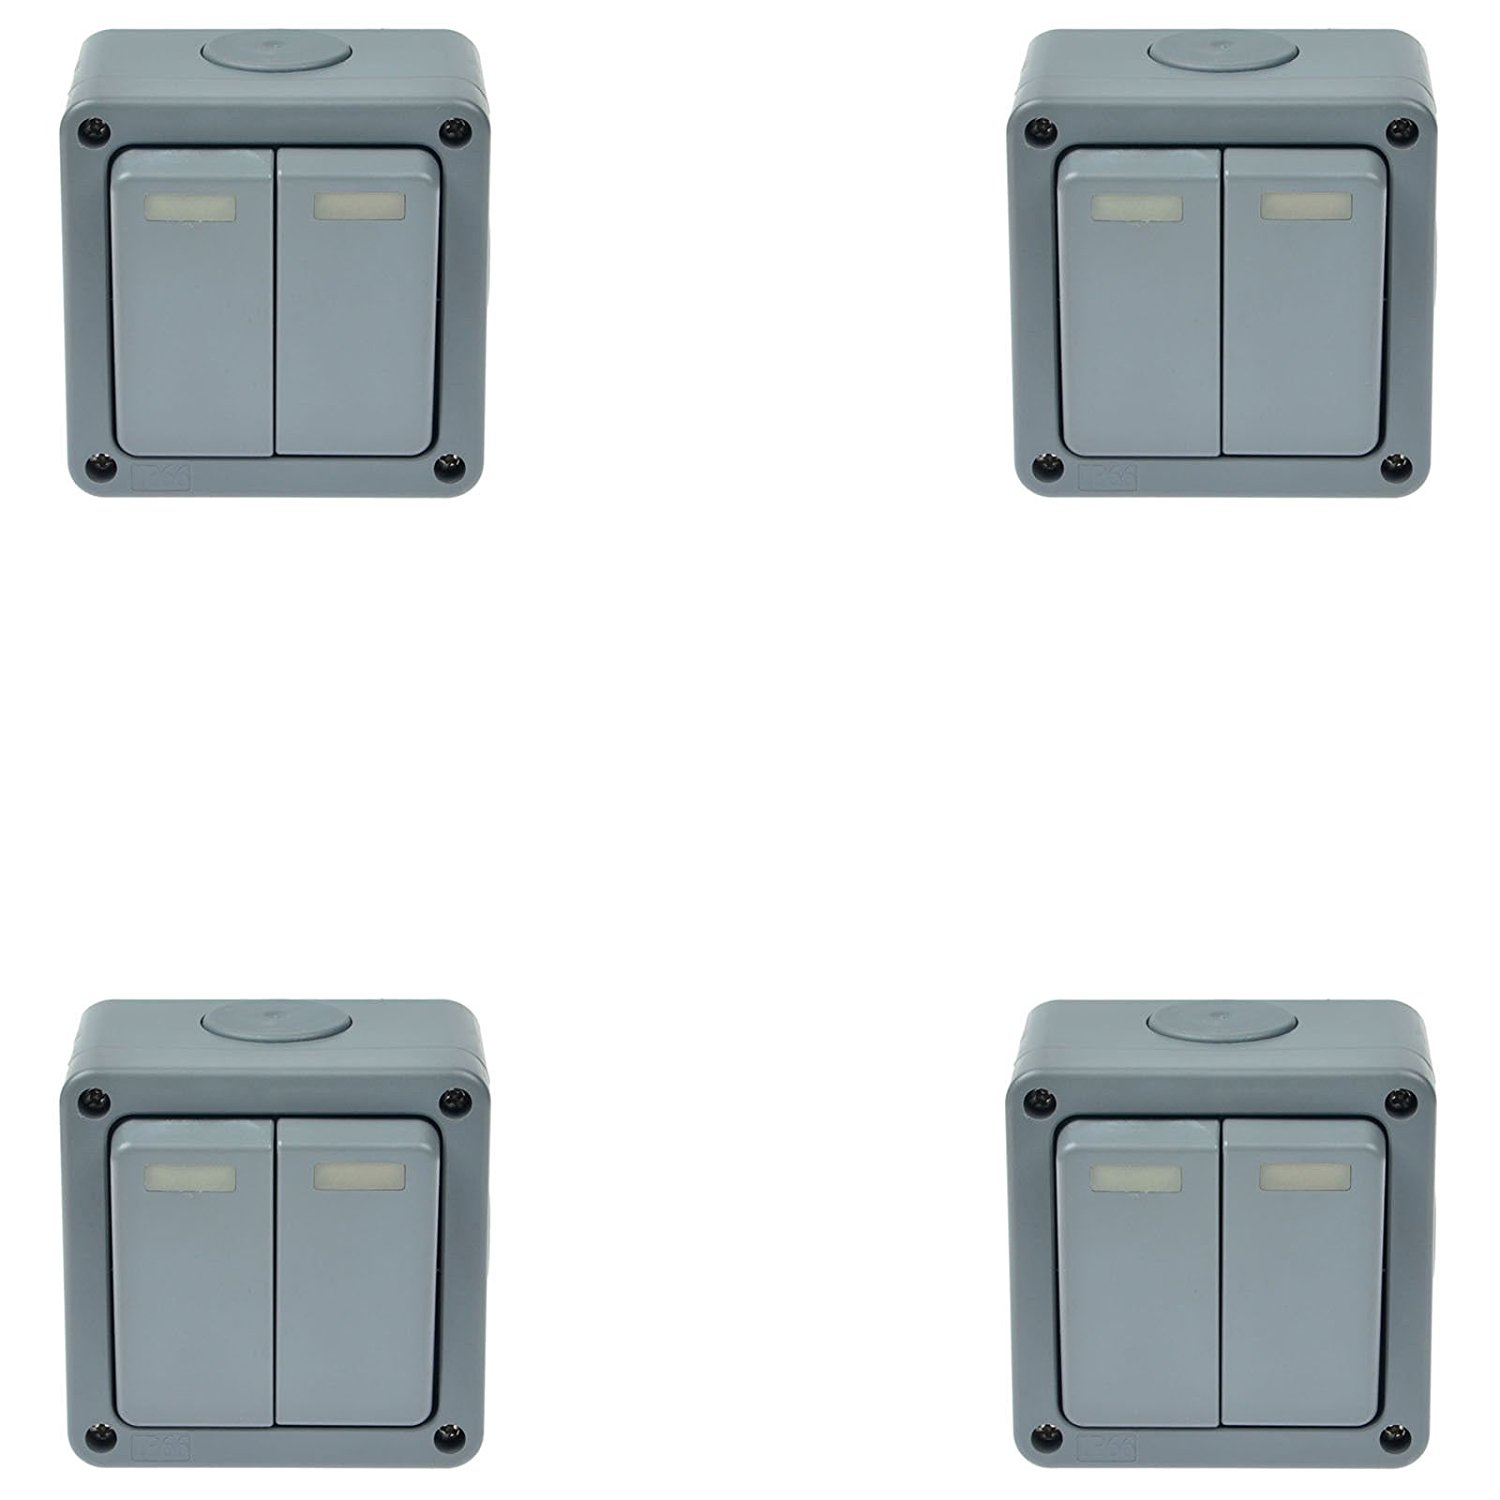 GREENCYCLE 4 Pack Outdoor IP66 Rated Weatherproof 10A Grey 2 Gang Socket 2 Way Dual Switch